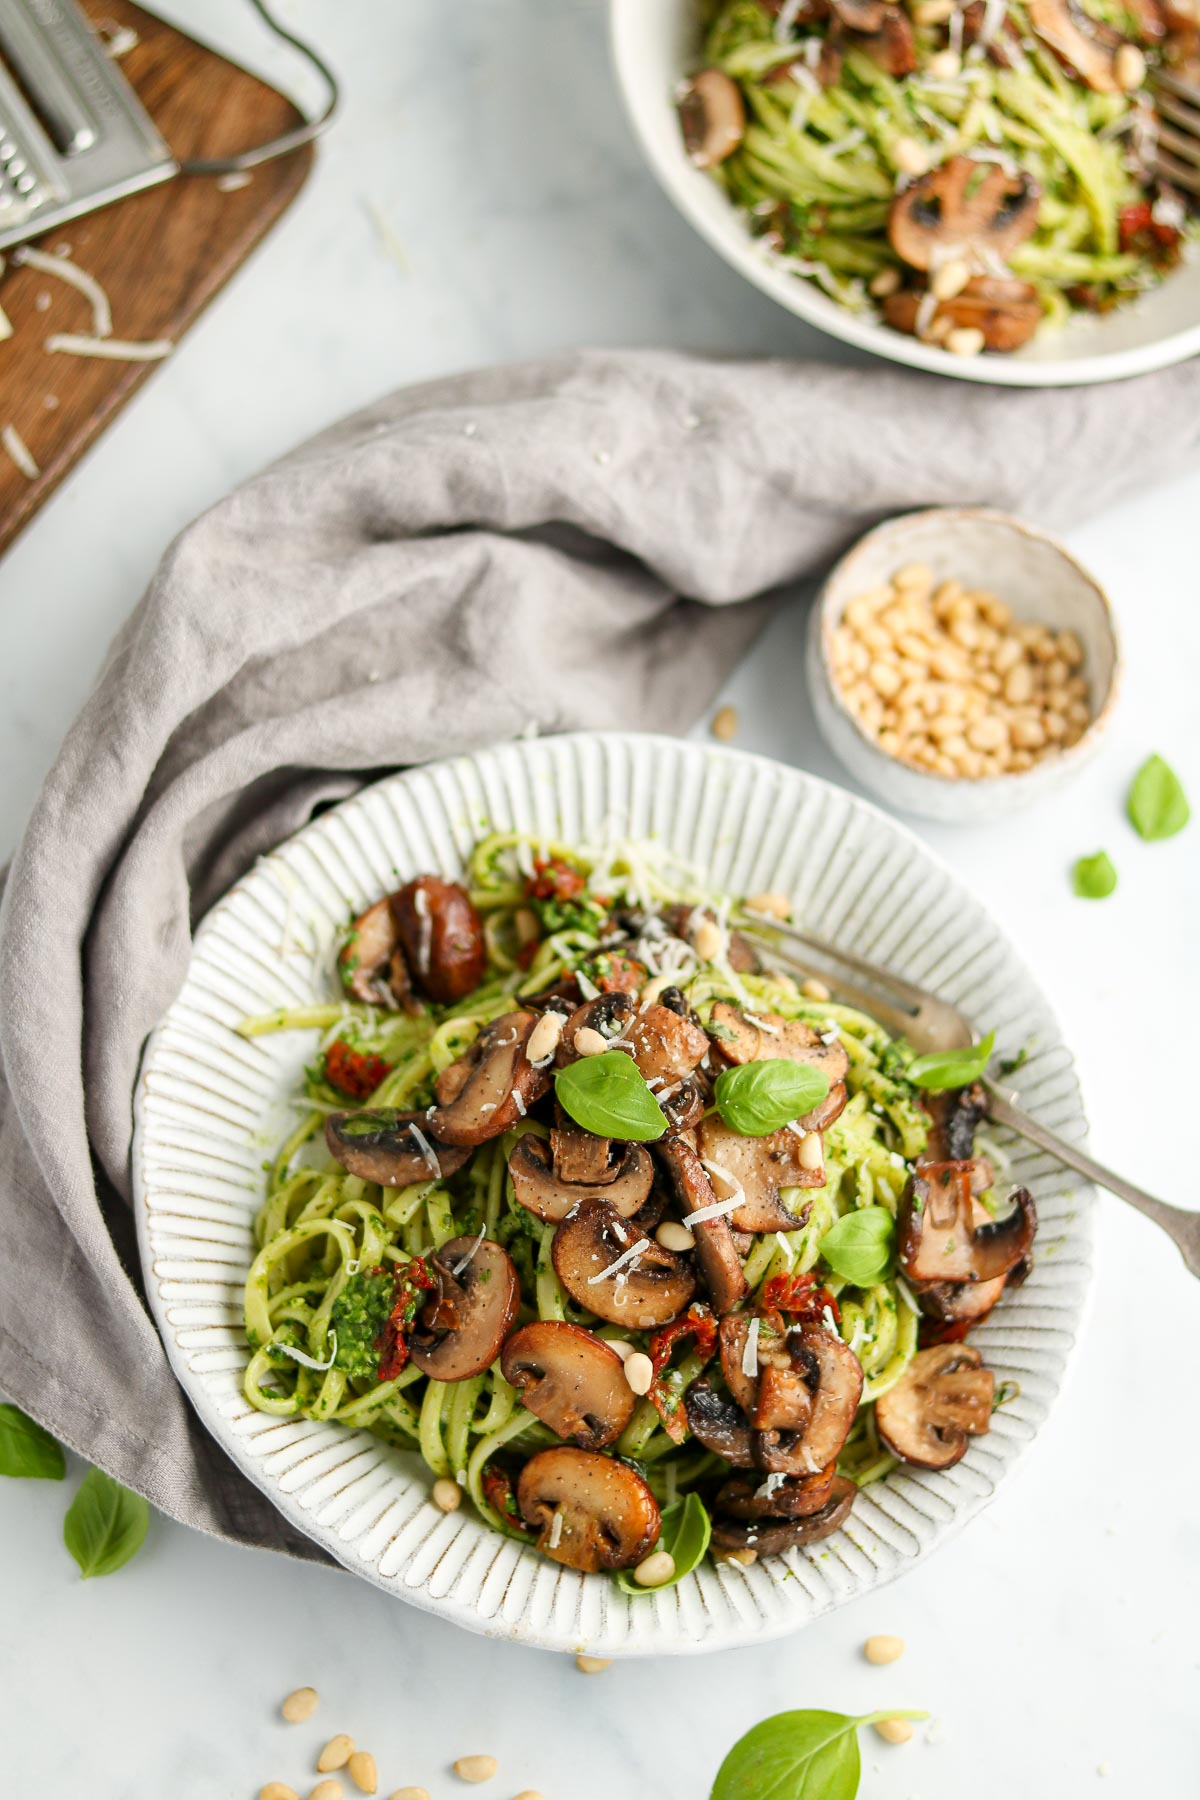 Pasta covered in pesto sauce with mushrooms